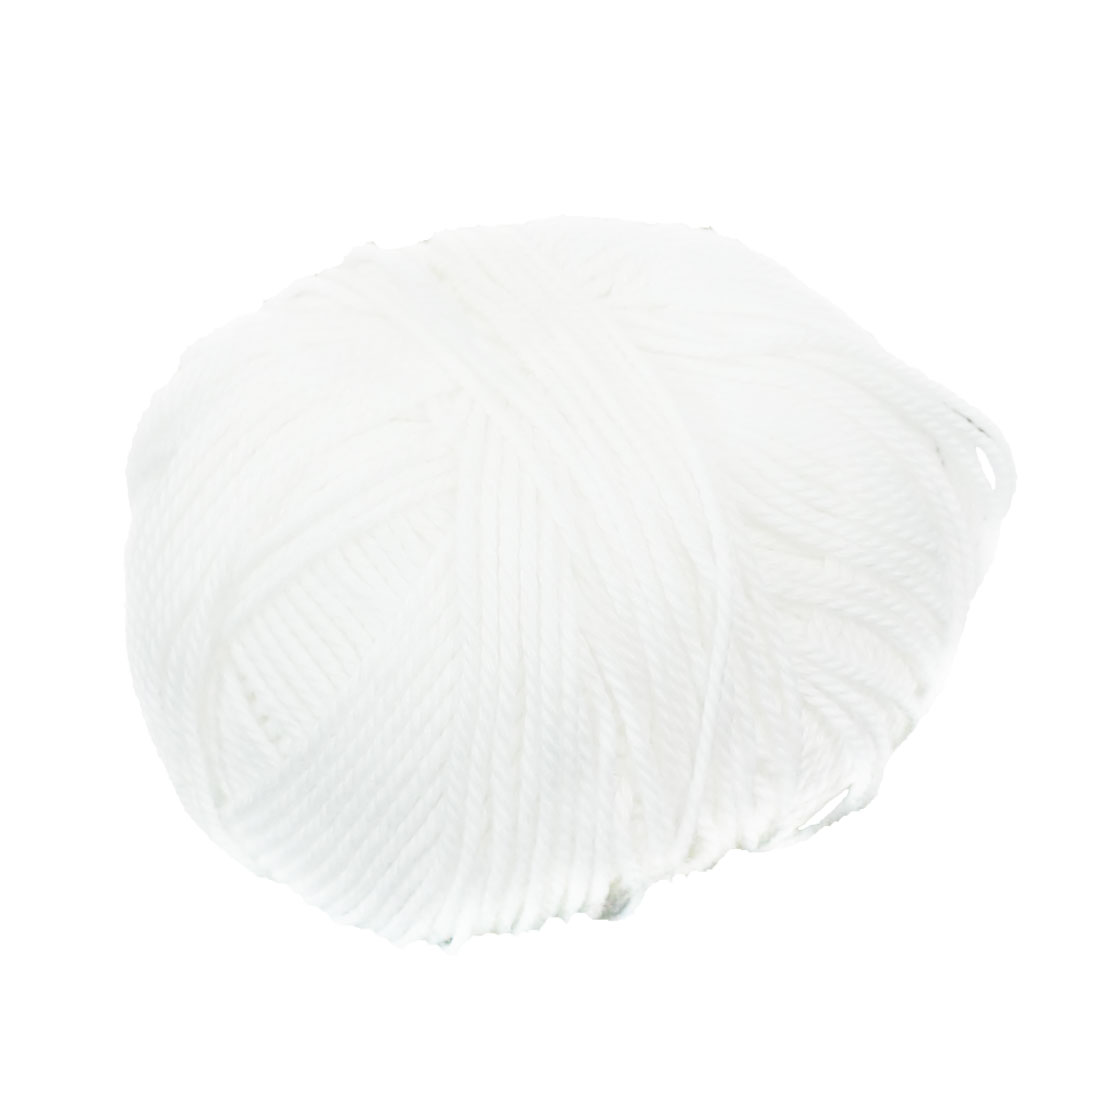 1.5mm Packaging Bookbinding Sewing White Linen Cord Twine Ball